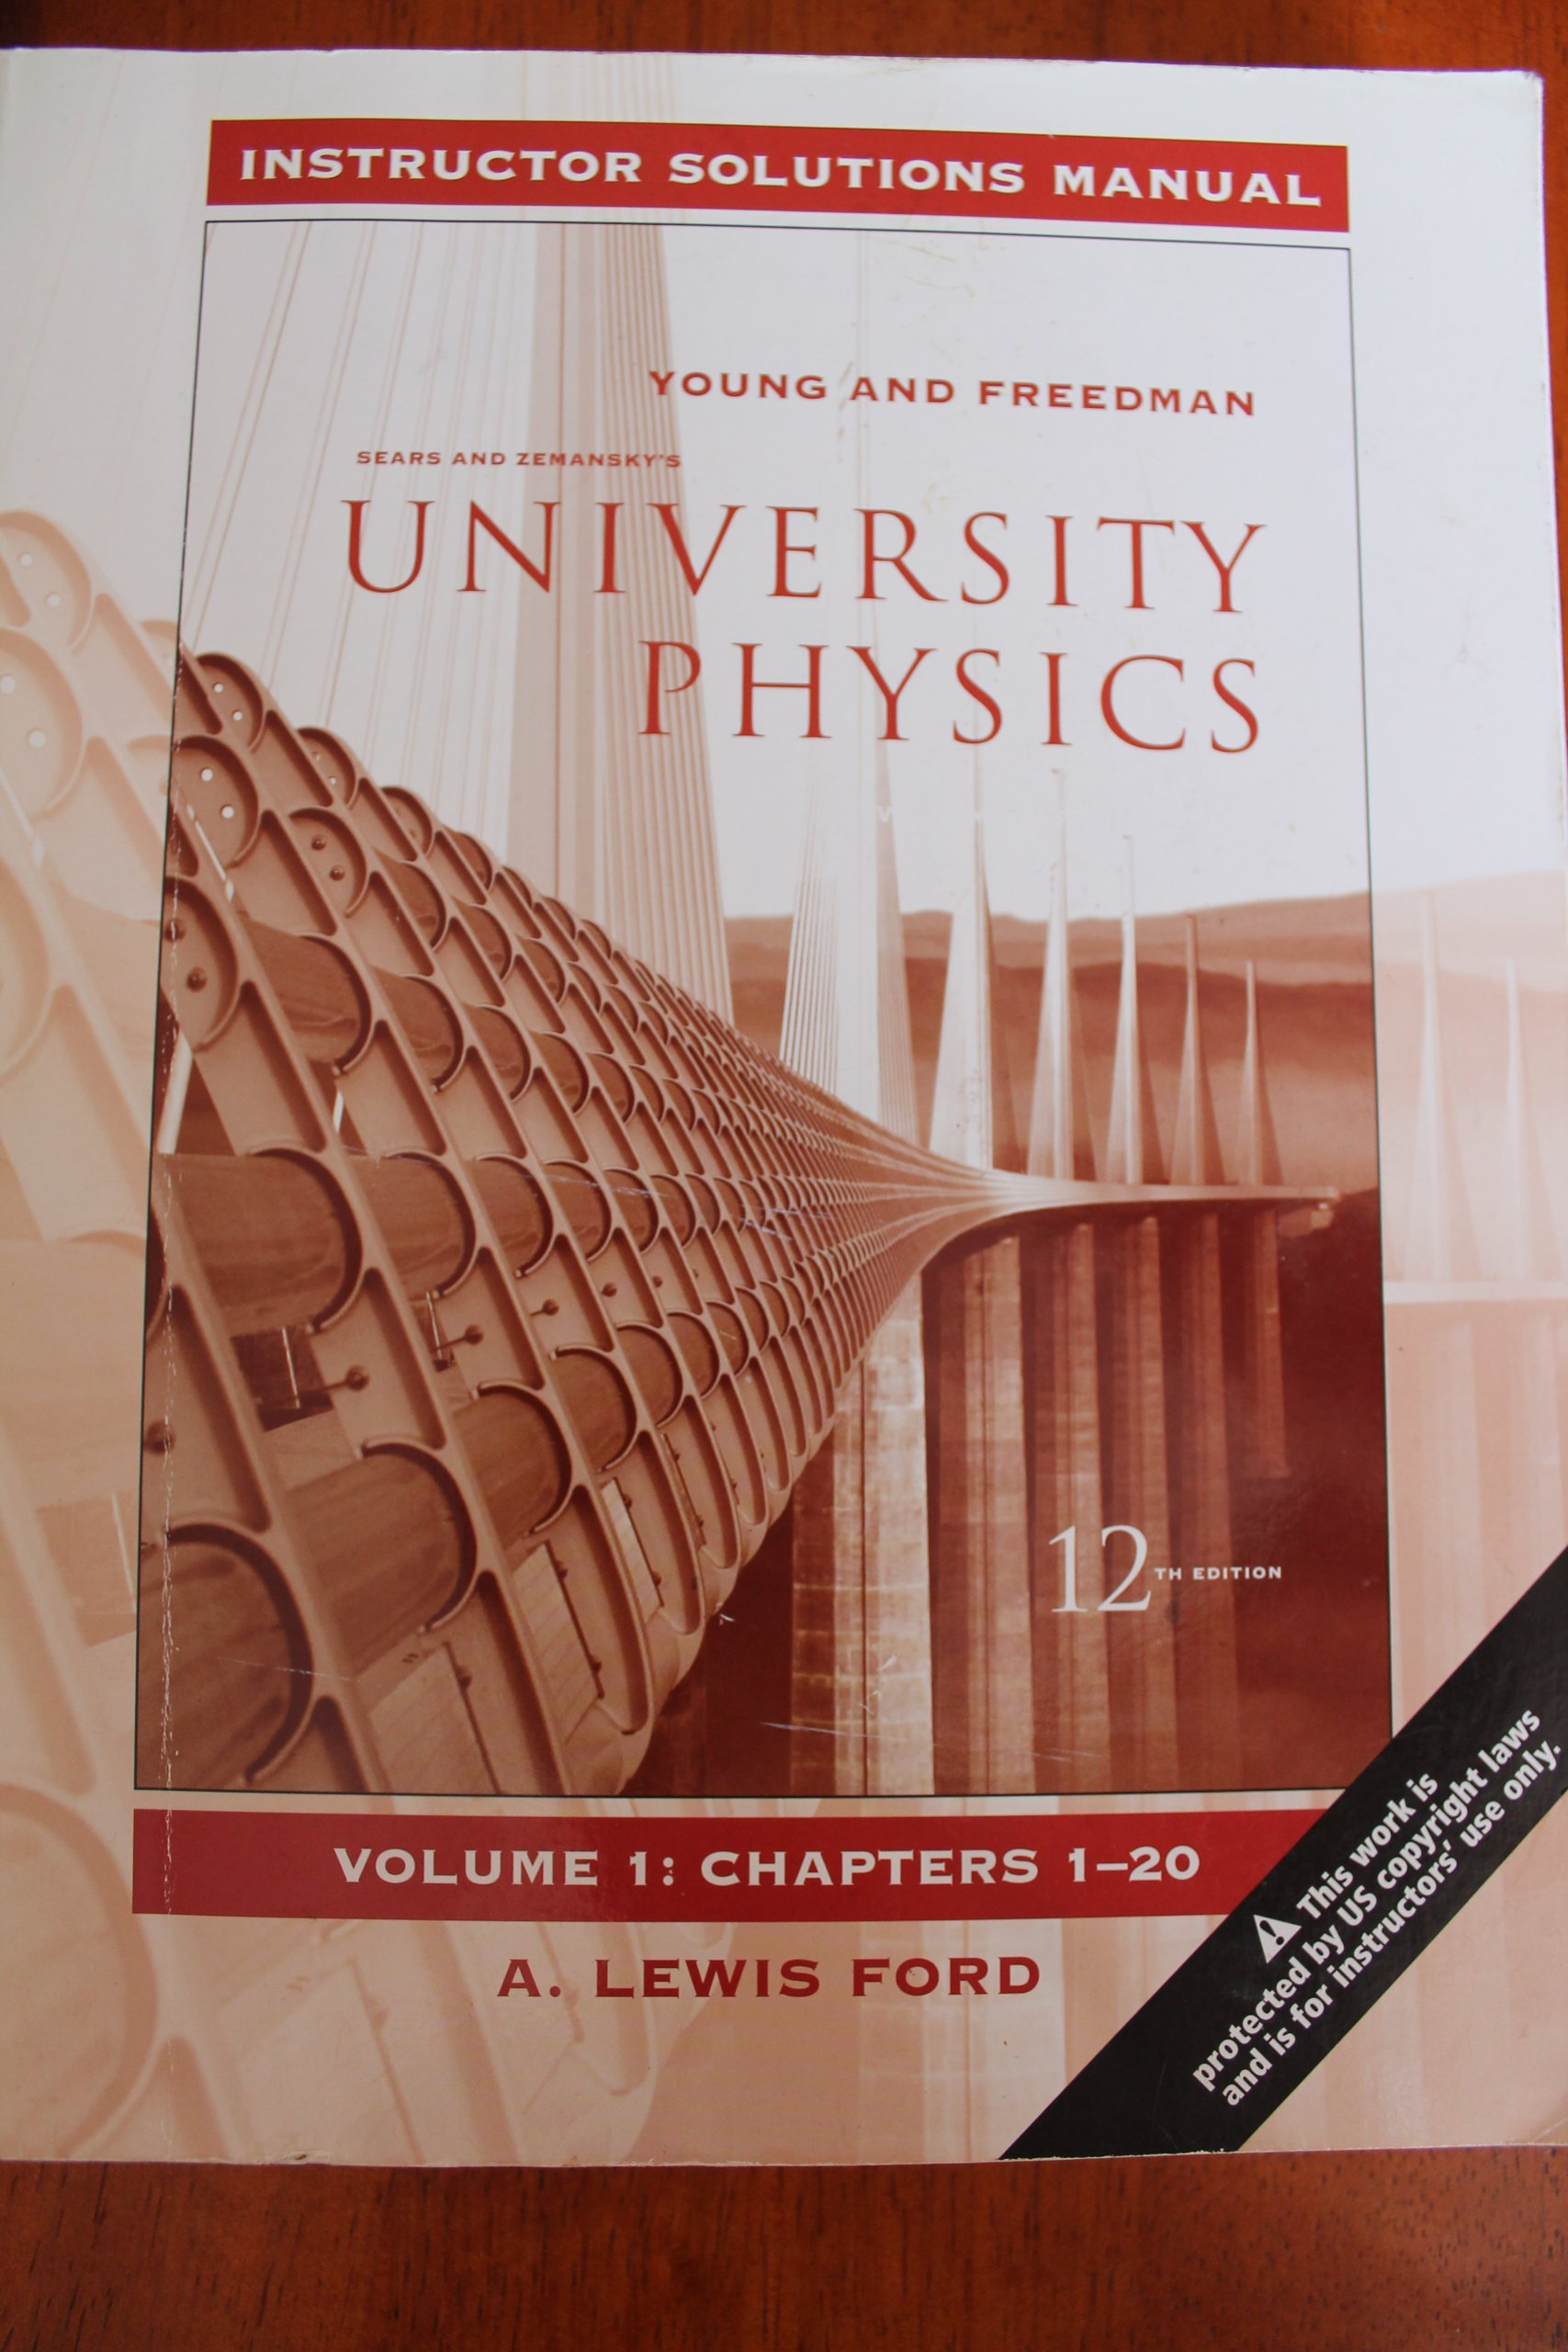 University Physics Instructor Solutions Manual Vol. 1, Chapters 1-20 (1):  A. Lewis Ford, Sears & Zemansky, Young & Freedman: 9780321499684:  Amazon.com: ...